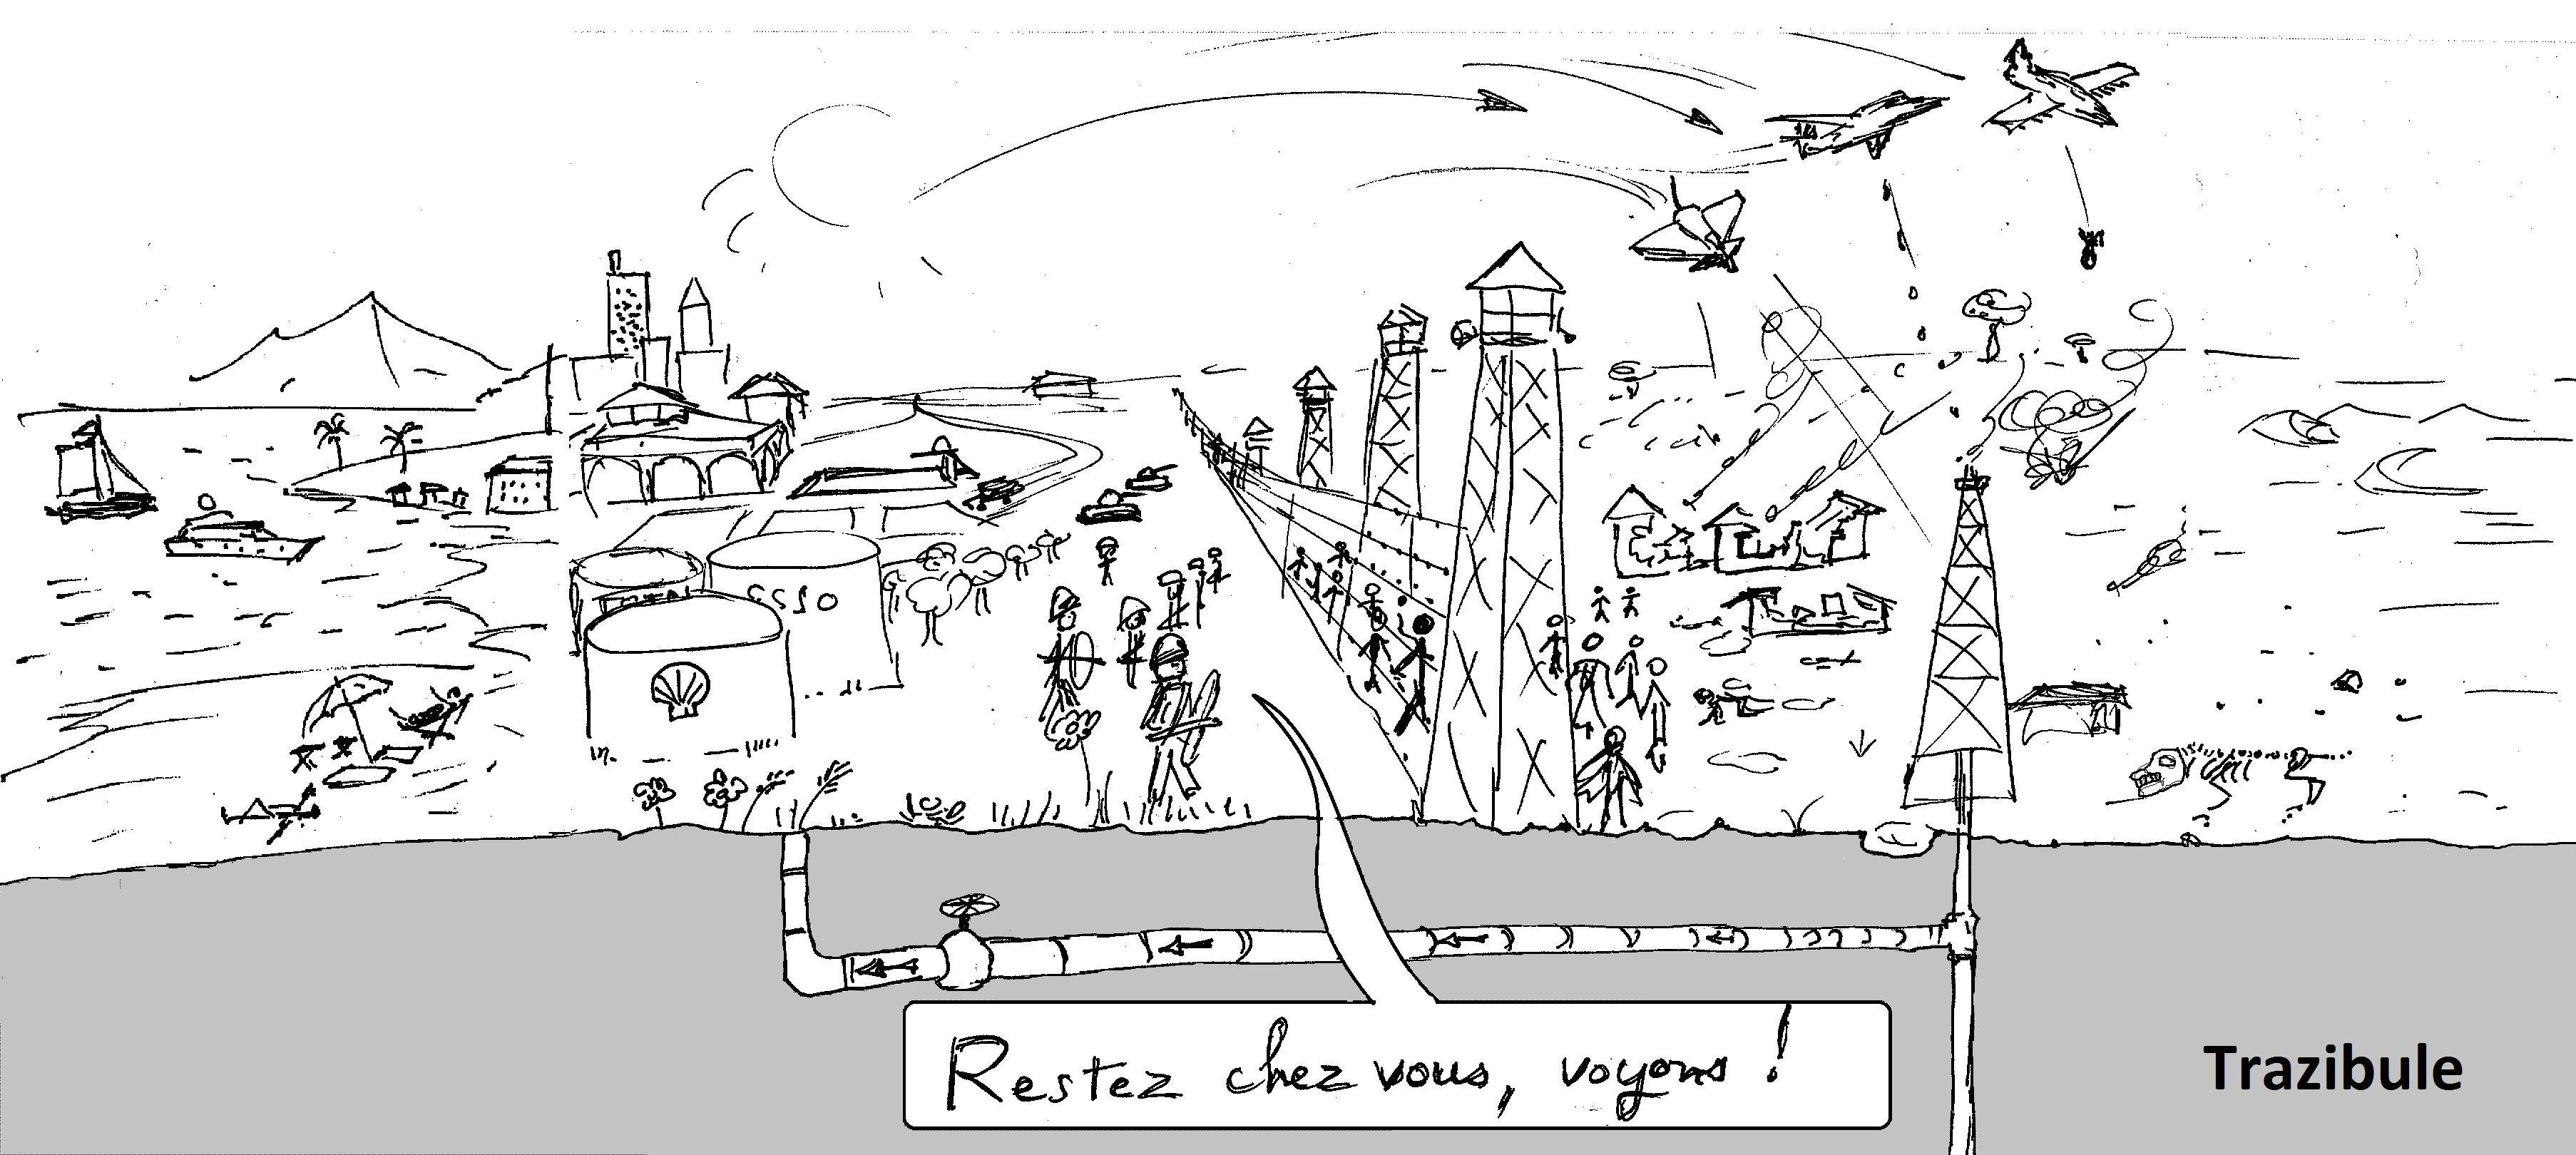 images/dessins/frontiere.jpg